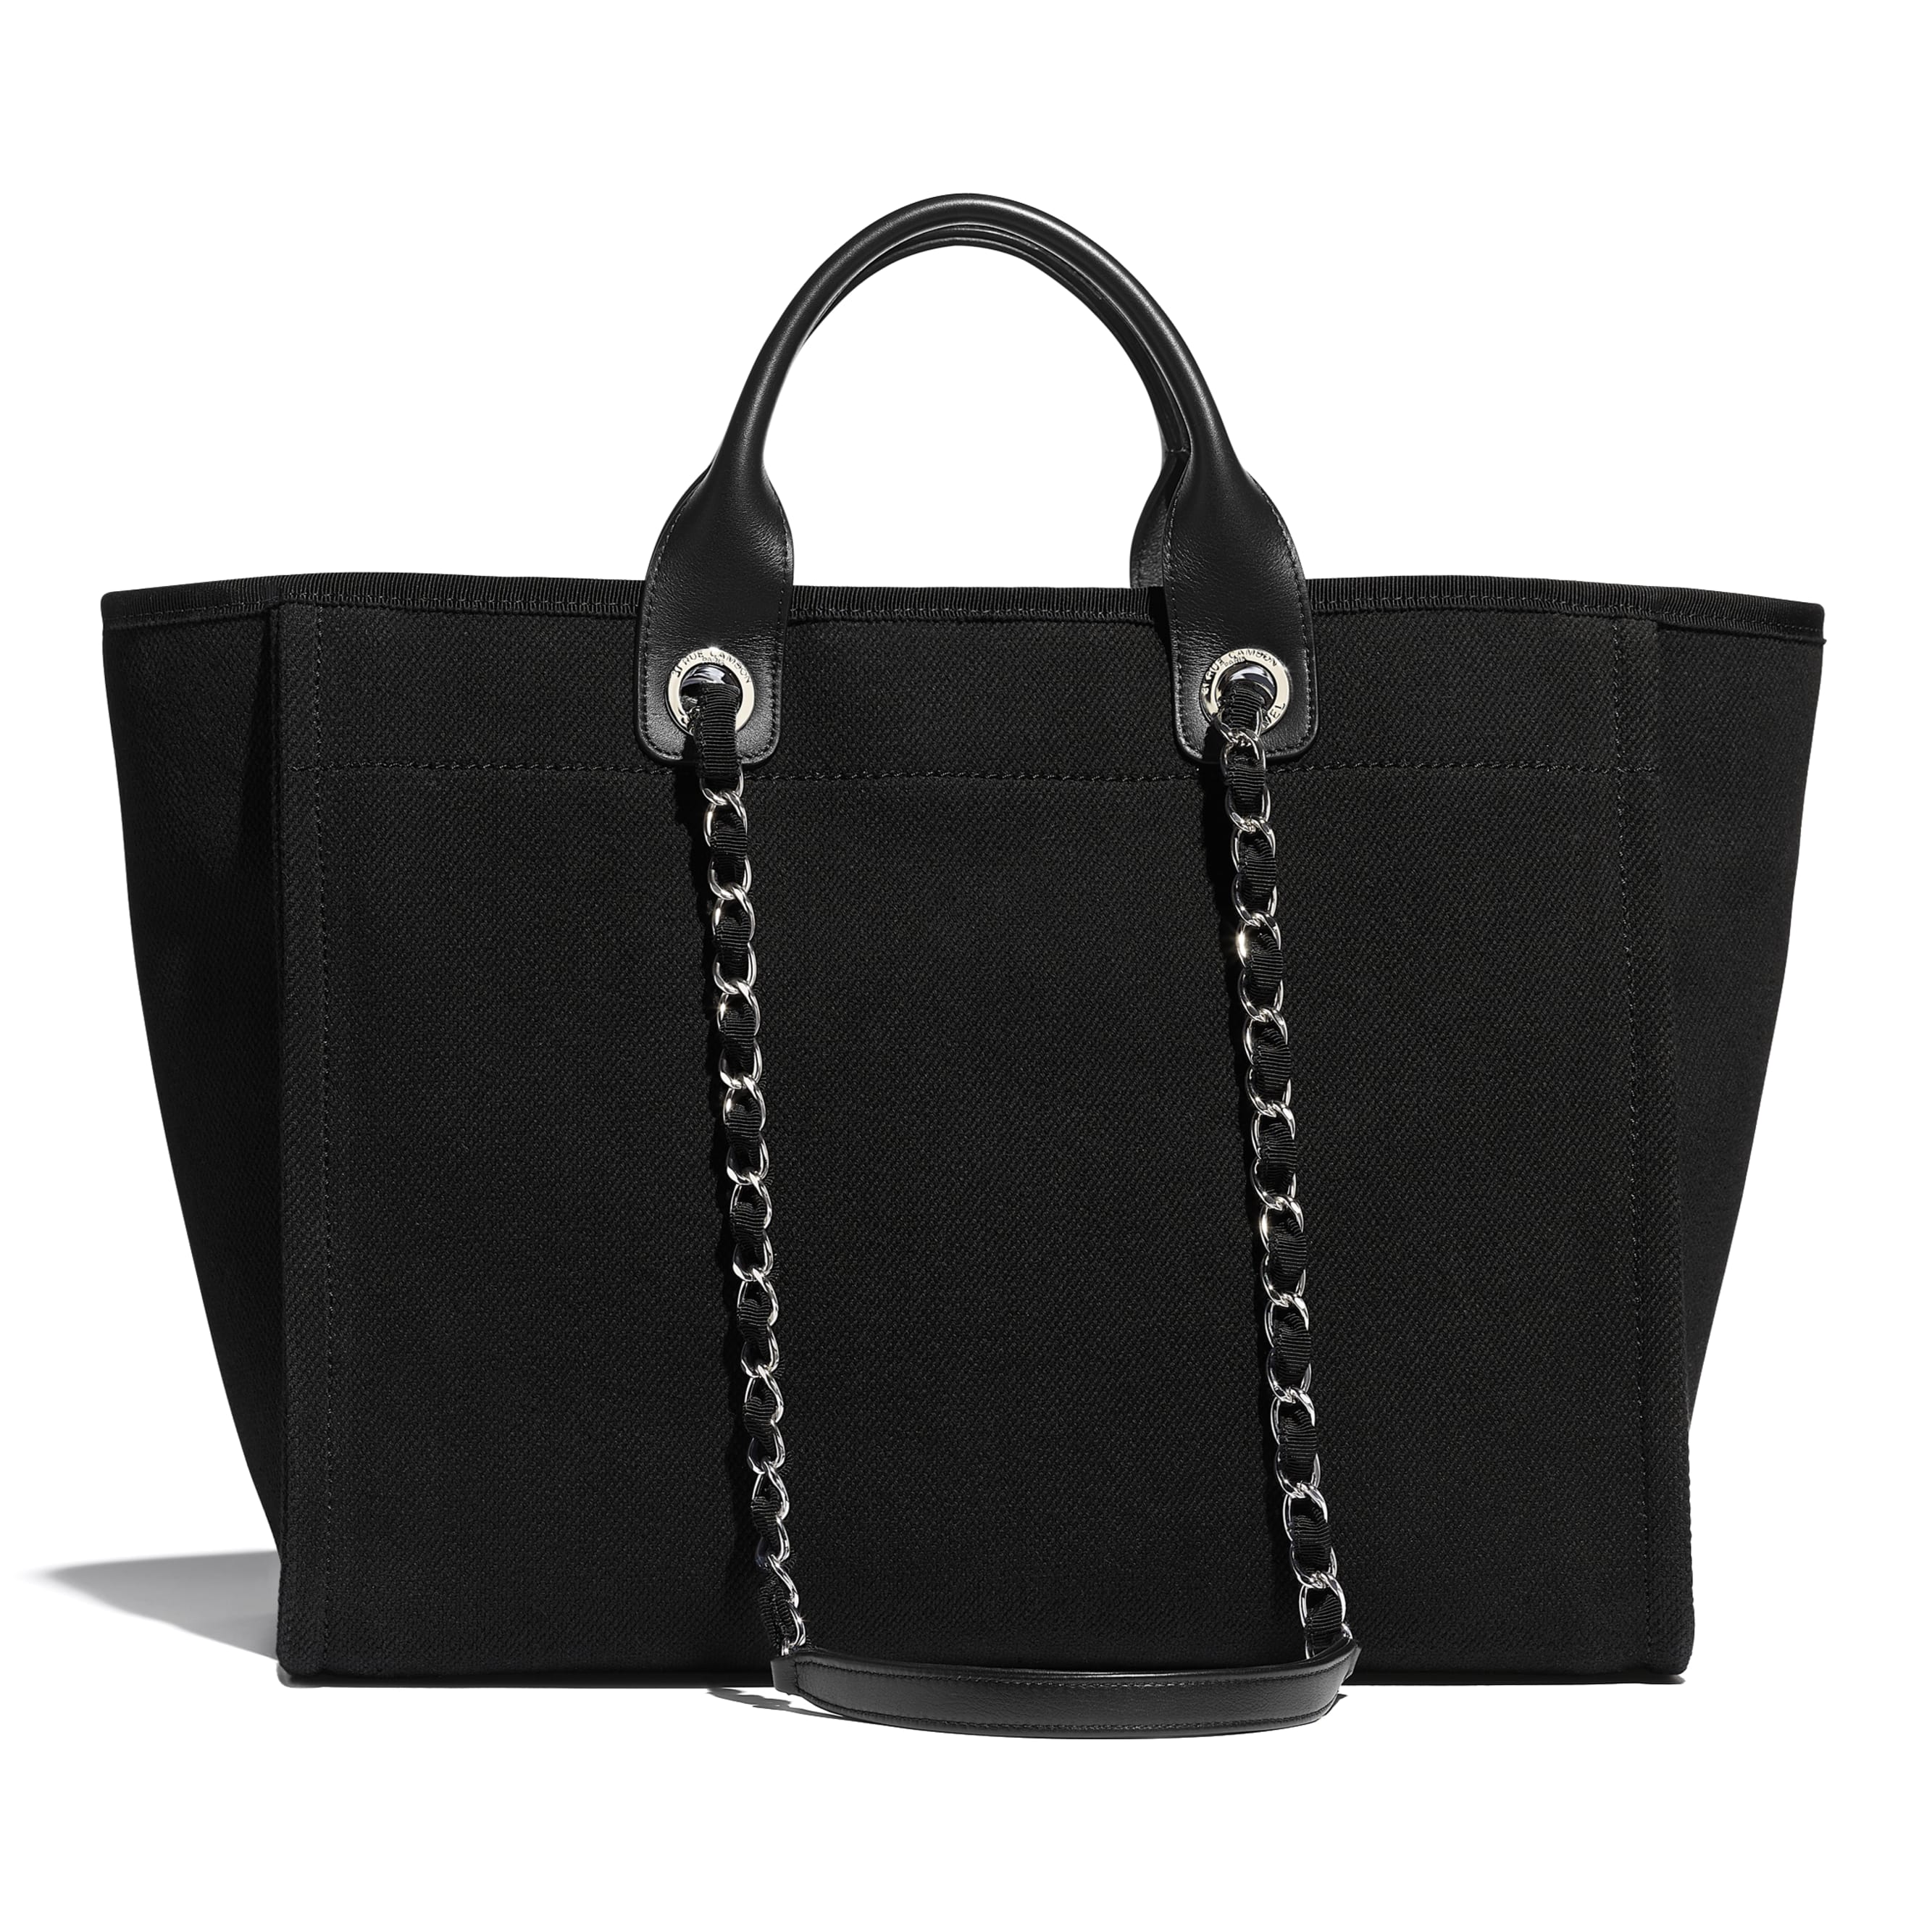 Shopping Bag - Black - Mixed Fibers, Imitation Pearls, Silver-Tone Metal - Alternative view - see standard sized version